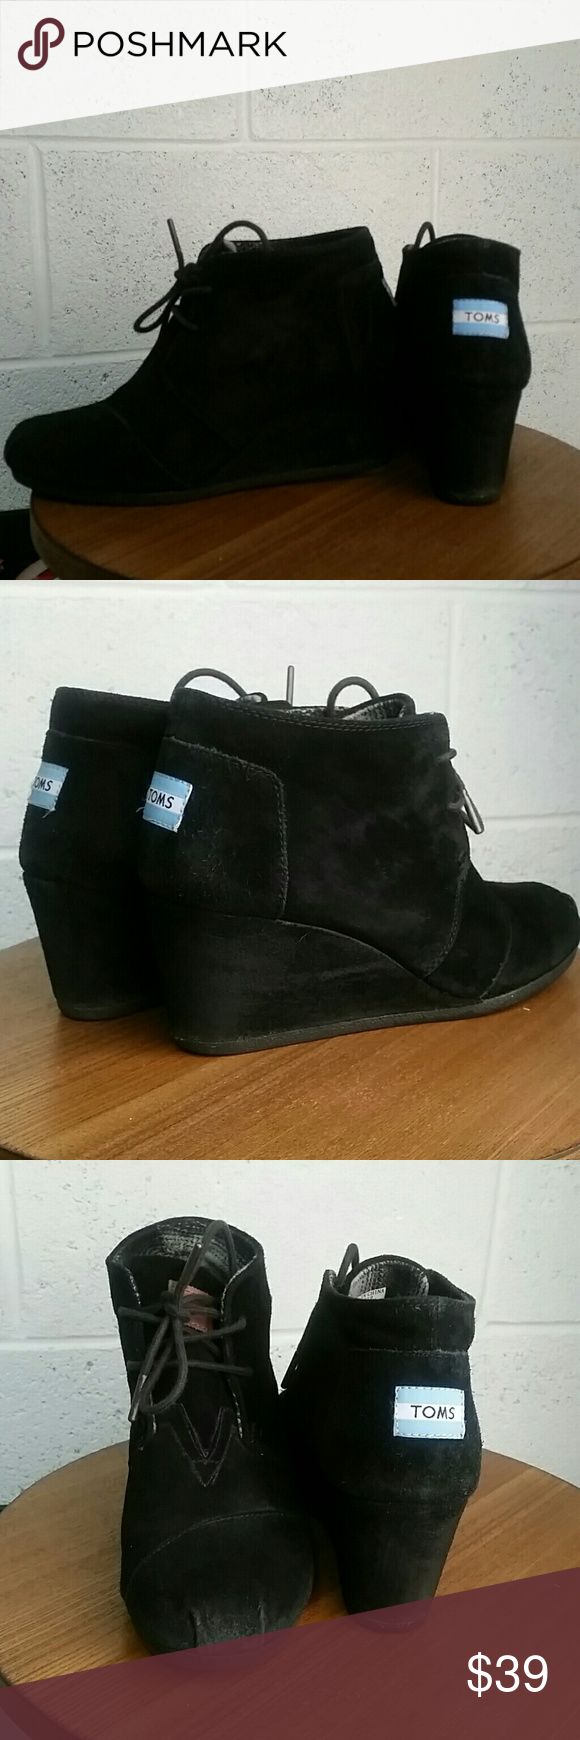 Black Toms wedge booties, 8.5 Black Tom's wedge booties TOMS Shoes Ankle Boots & Booties